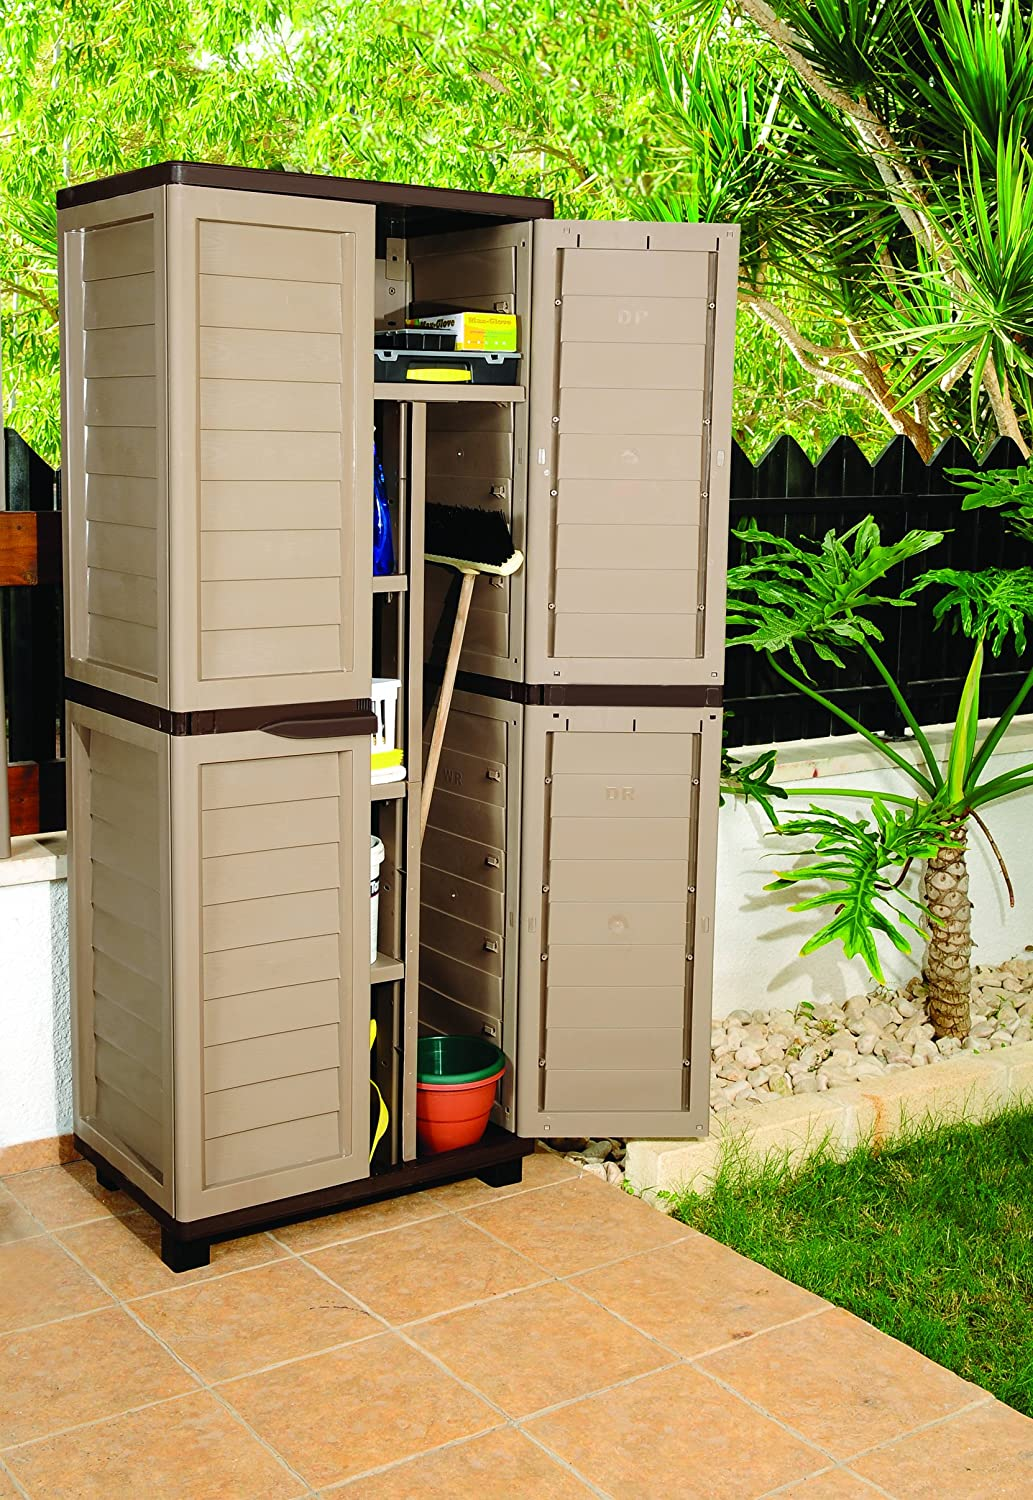 6ft Mocha Plastic Garden Storage Utility Shed Cabinet With Shelves:  Amazon.co.uk: Garden U0026 Outdoors